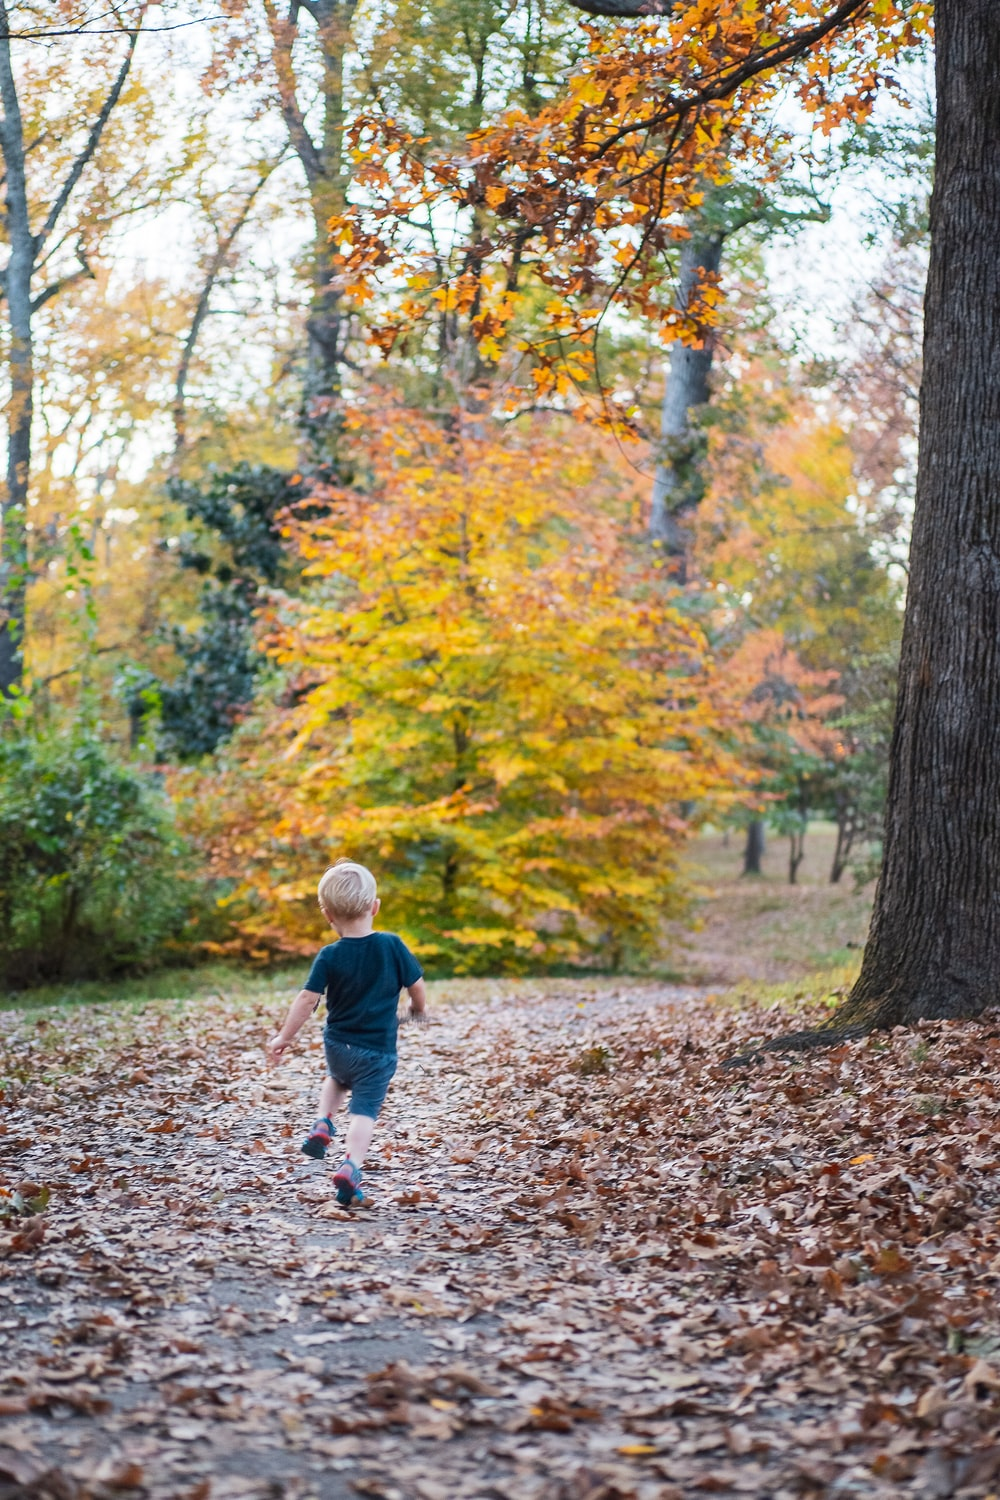 child in blue jacket walking on brown leaves on ground surrounded by trees during daytime